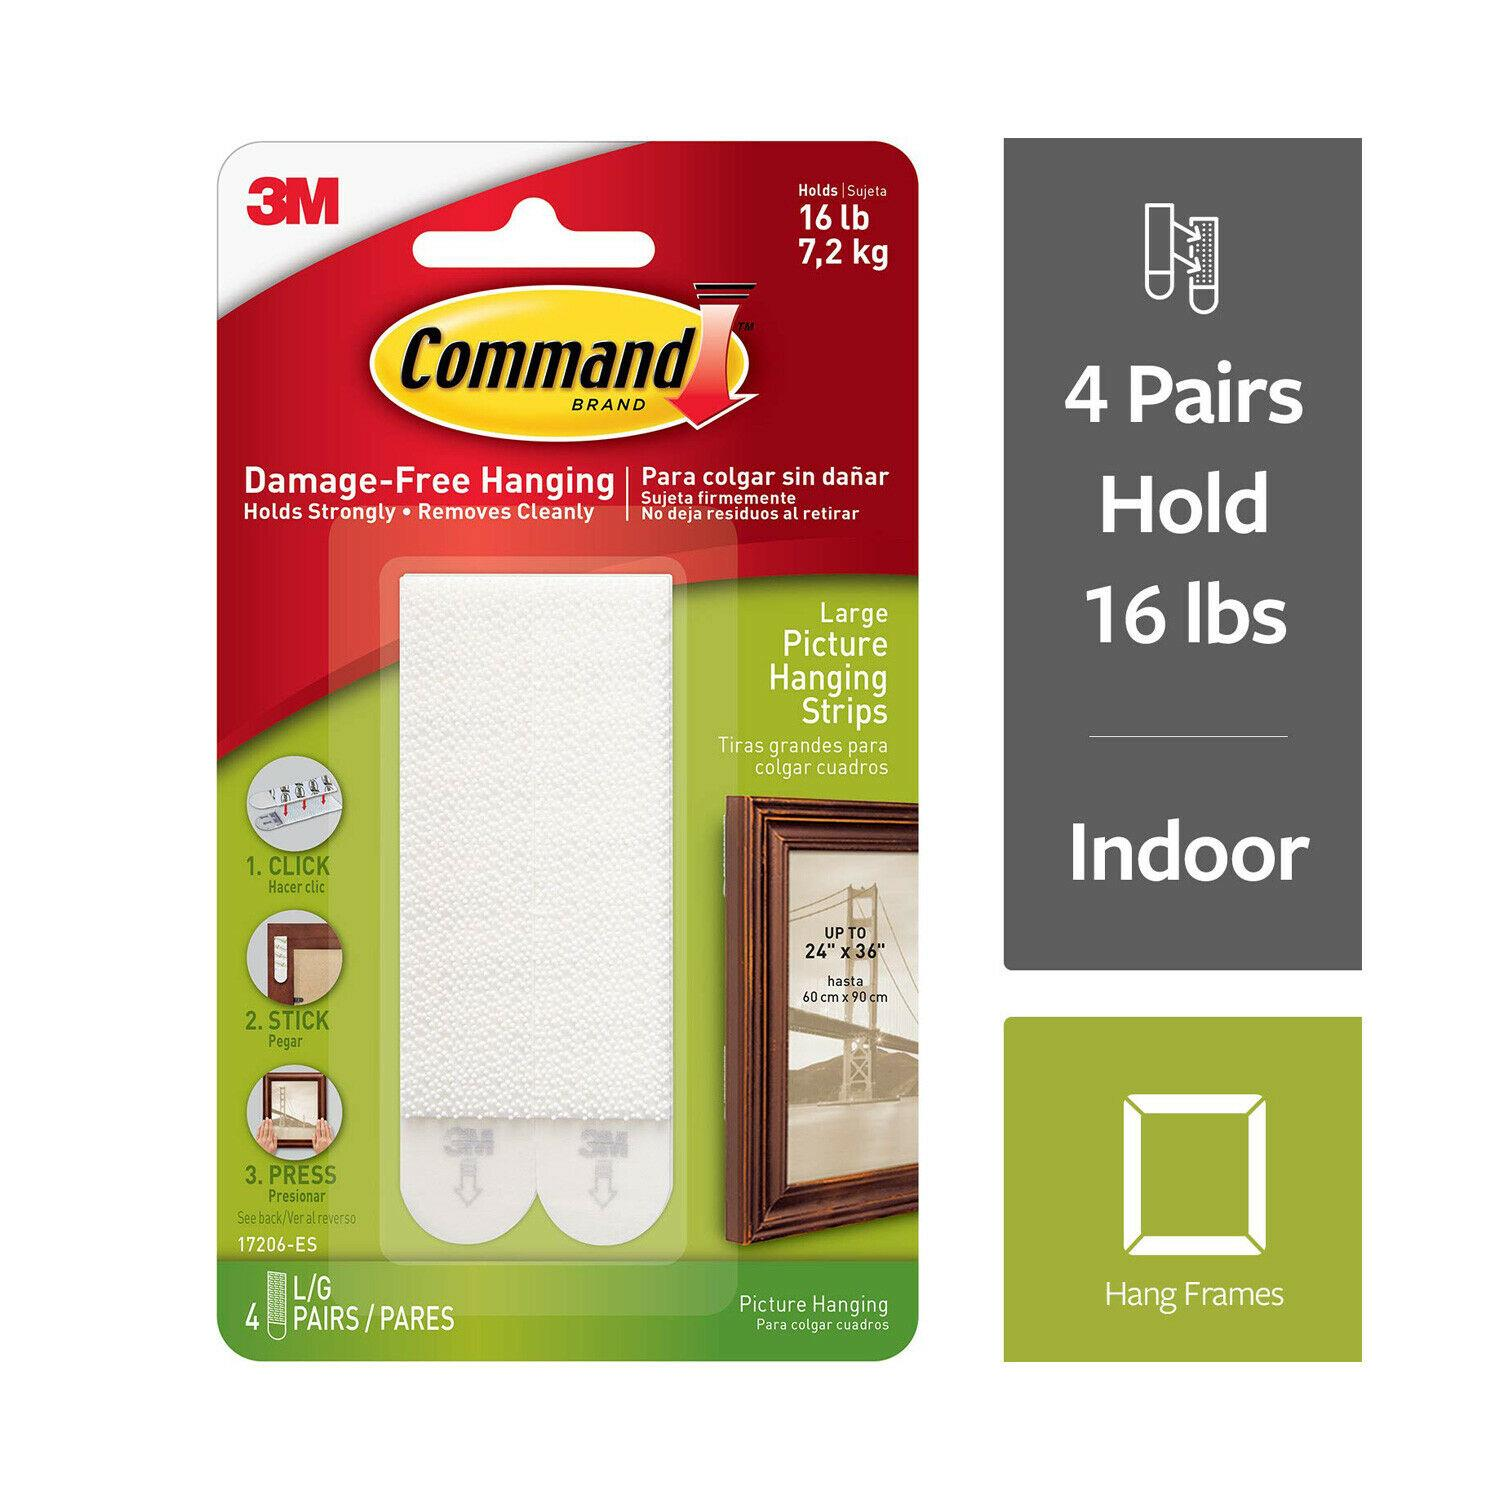 3M Command Large Picture & Frame Hanging Strips